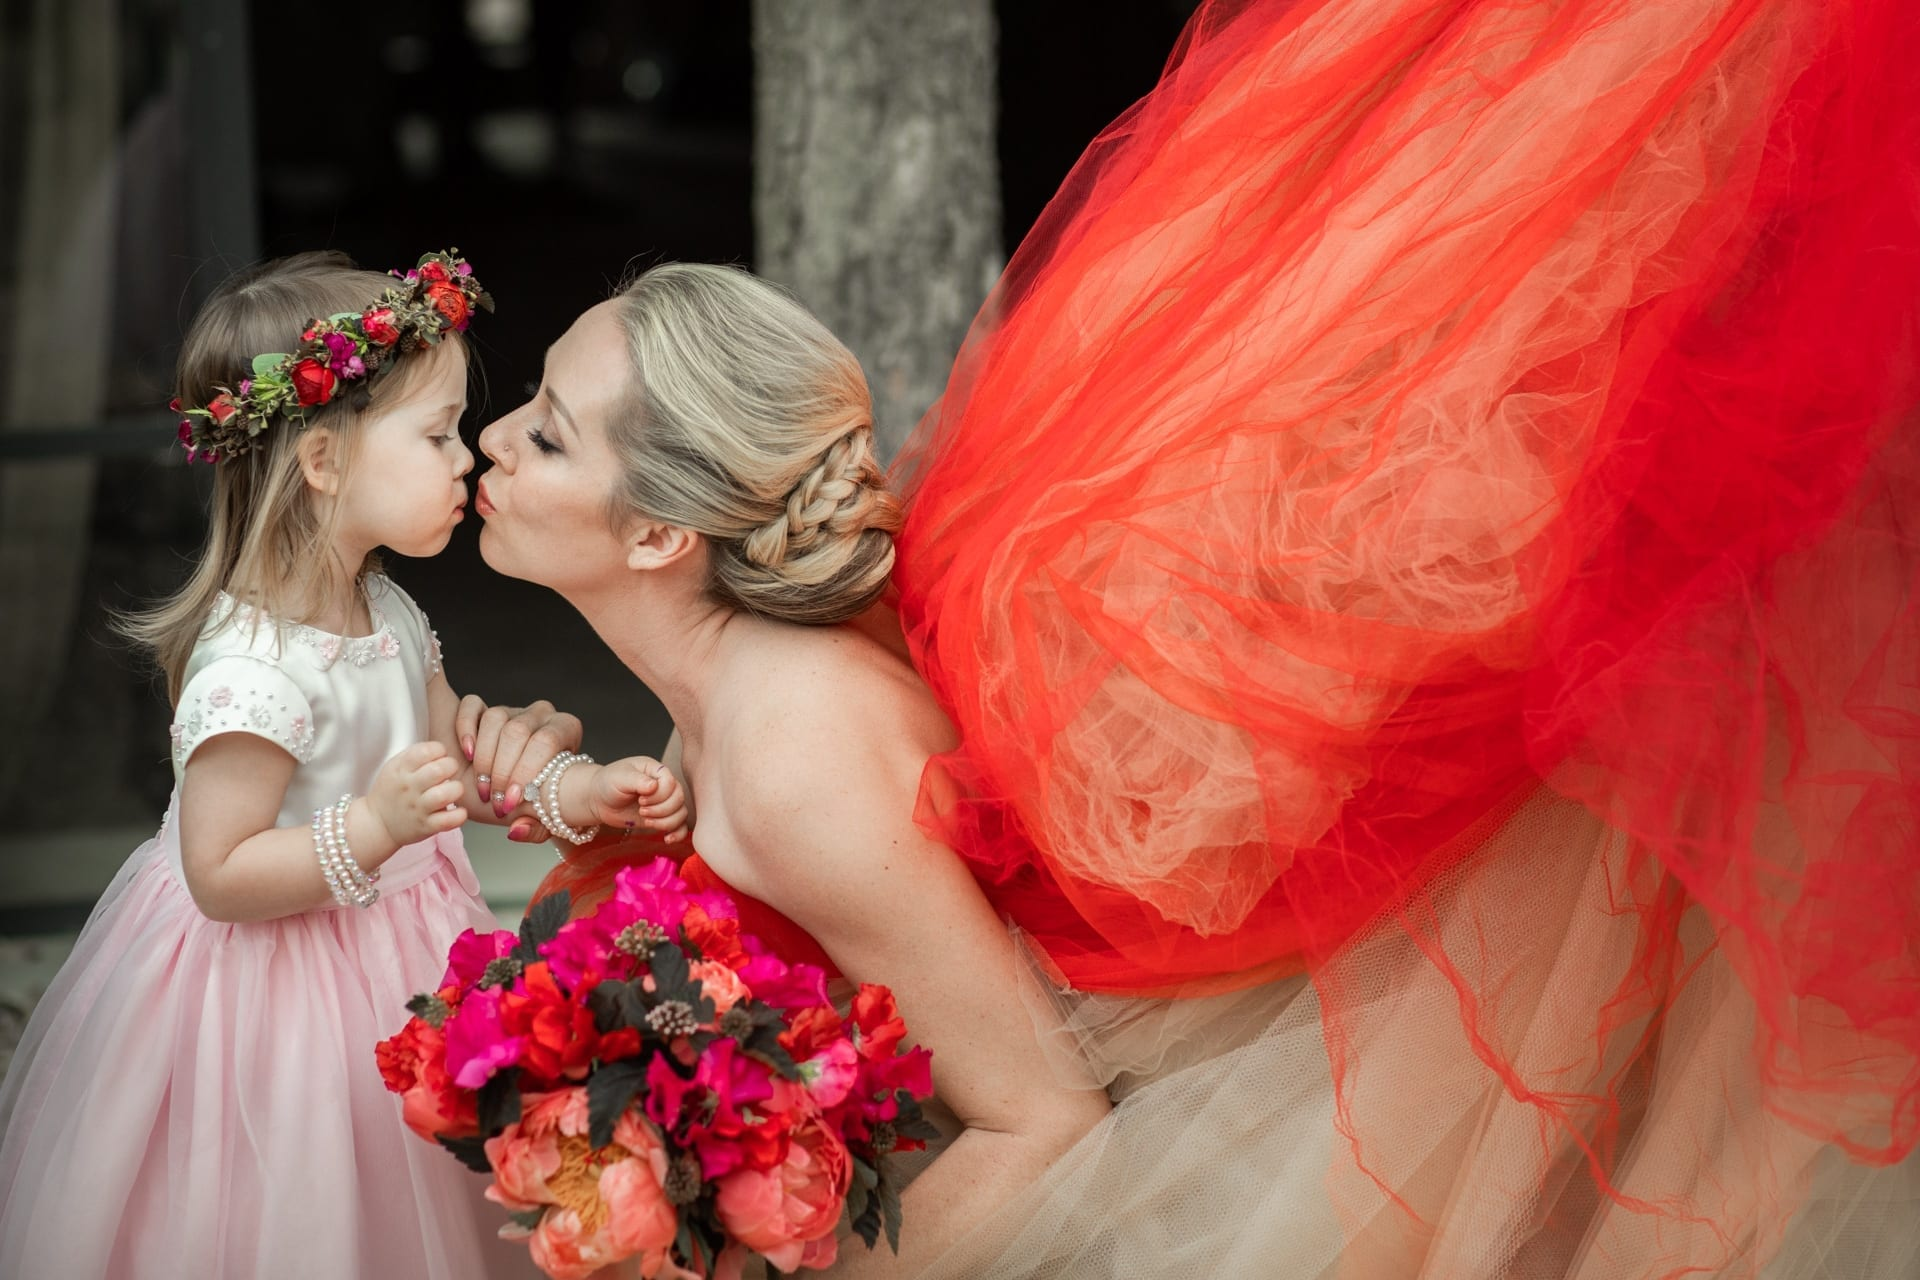 https://s3-eu-central-1.amazonaws.com/righiphotography-com/wp-content/uploads/2020/02/02183148/Wedding-Photo-No-Pose-Studio-Fotografico-Righi-RIGHI-63.jpg